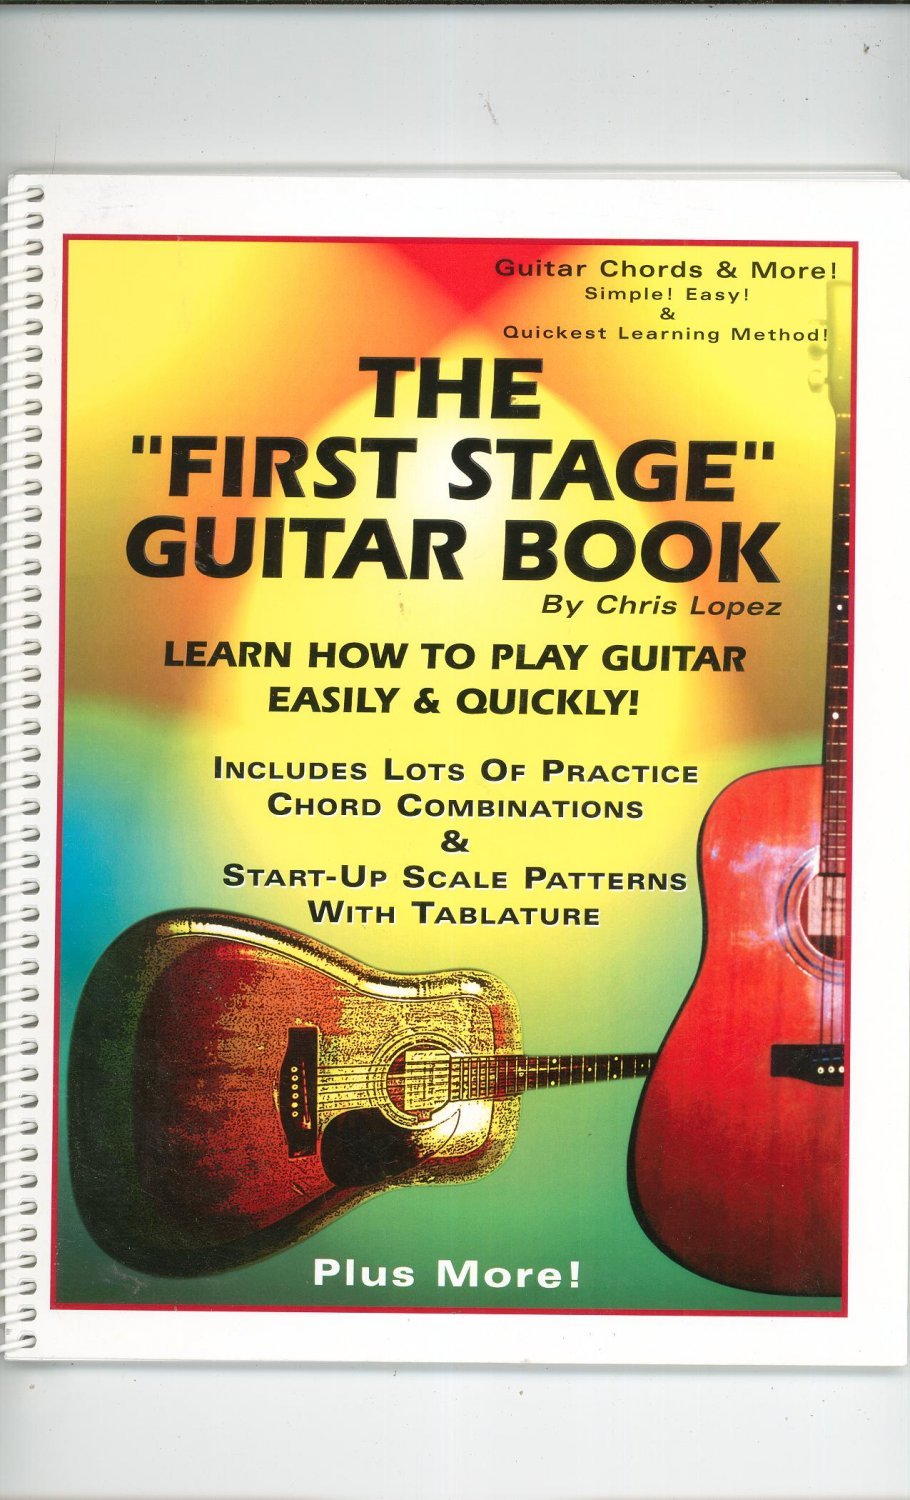 The First Stage Guitar Book by Chris Lopez 0966771907